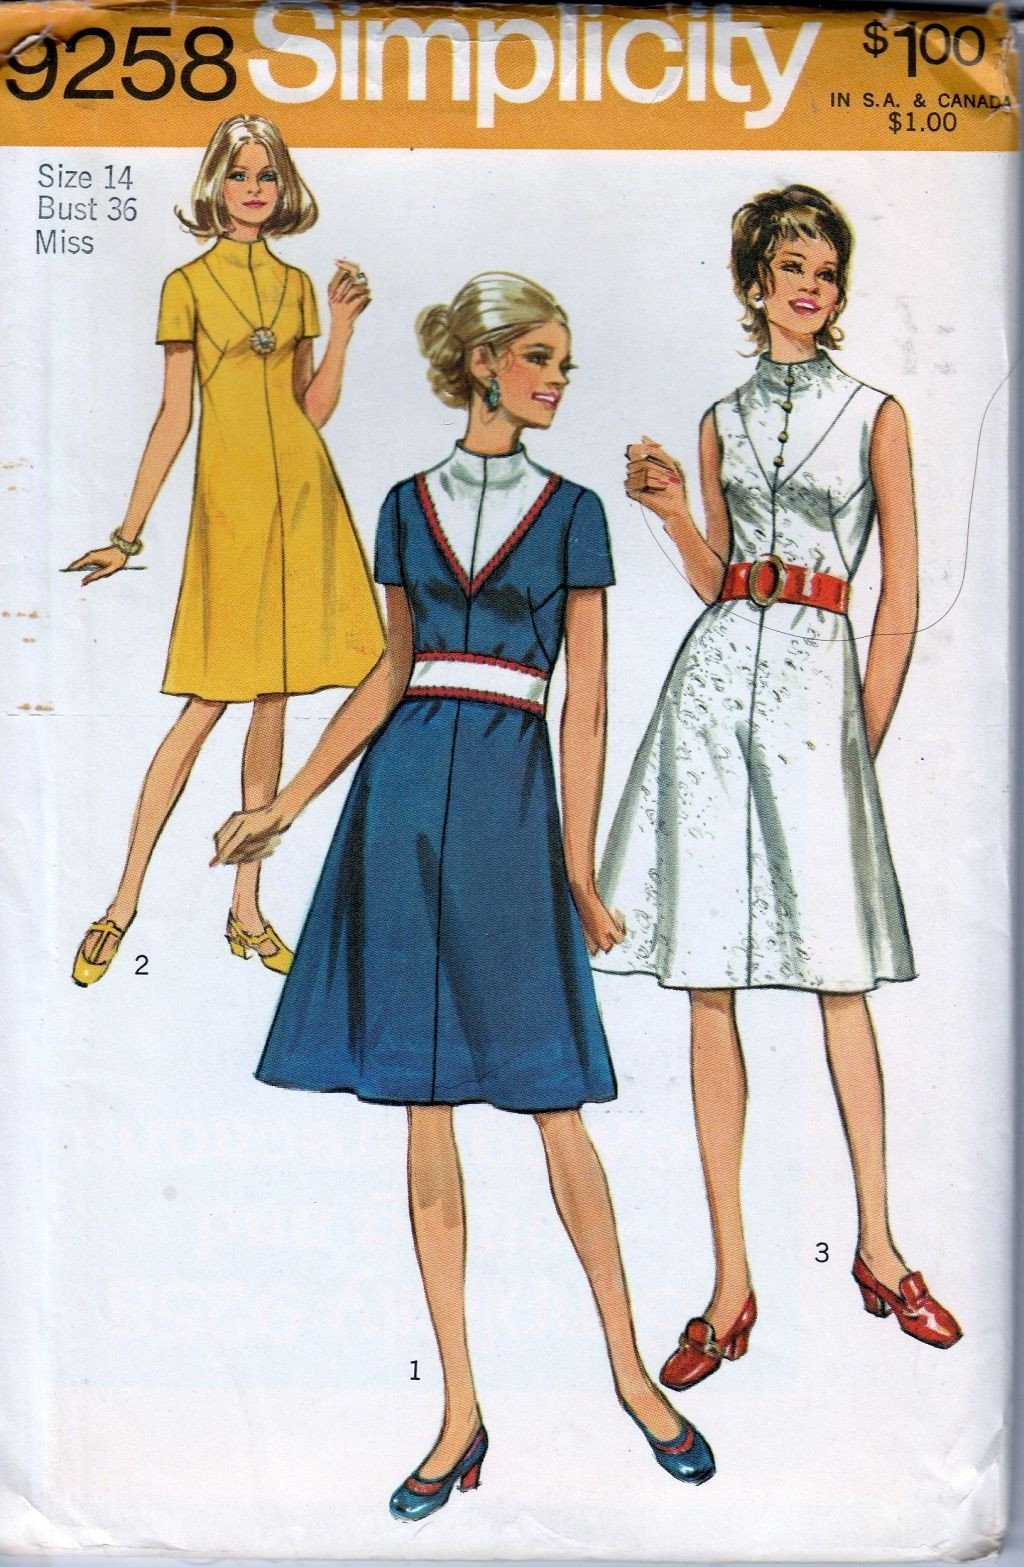 Simplicity 9258 Vintage 70's Sewing Pattern Ladies High Neck Dress - VintageStitching - Vintage Sewing Patterns